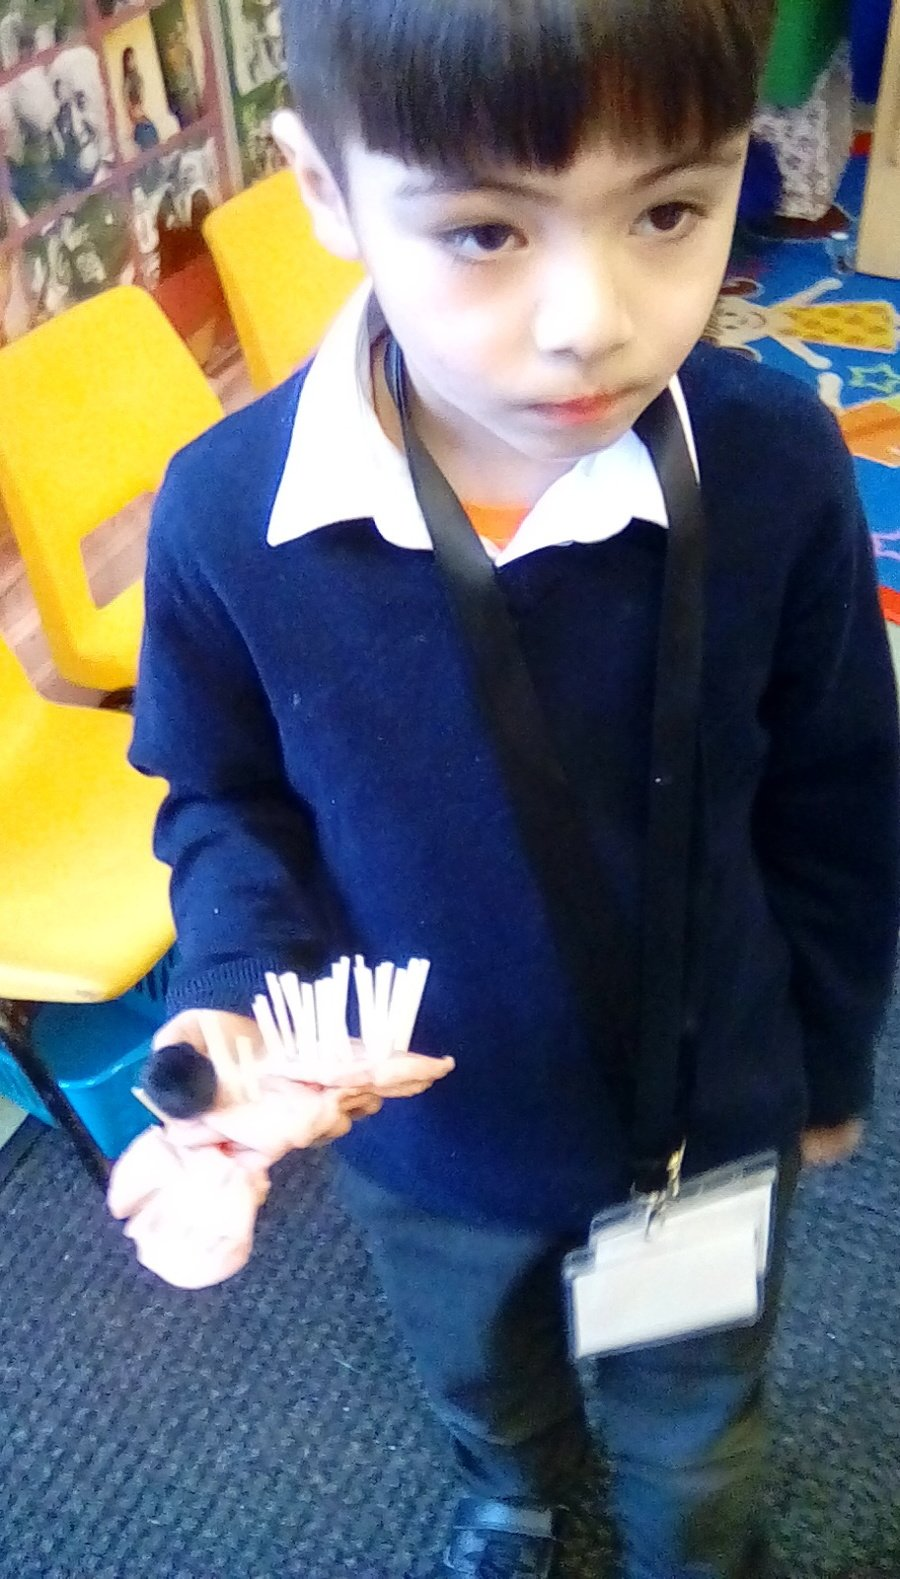 Making models of hedgehogs using a variety of media and materials.